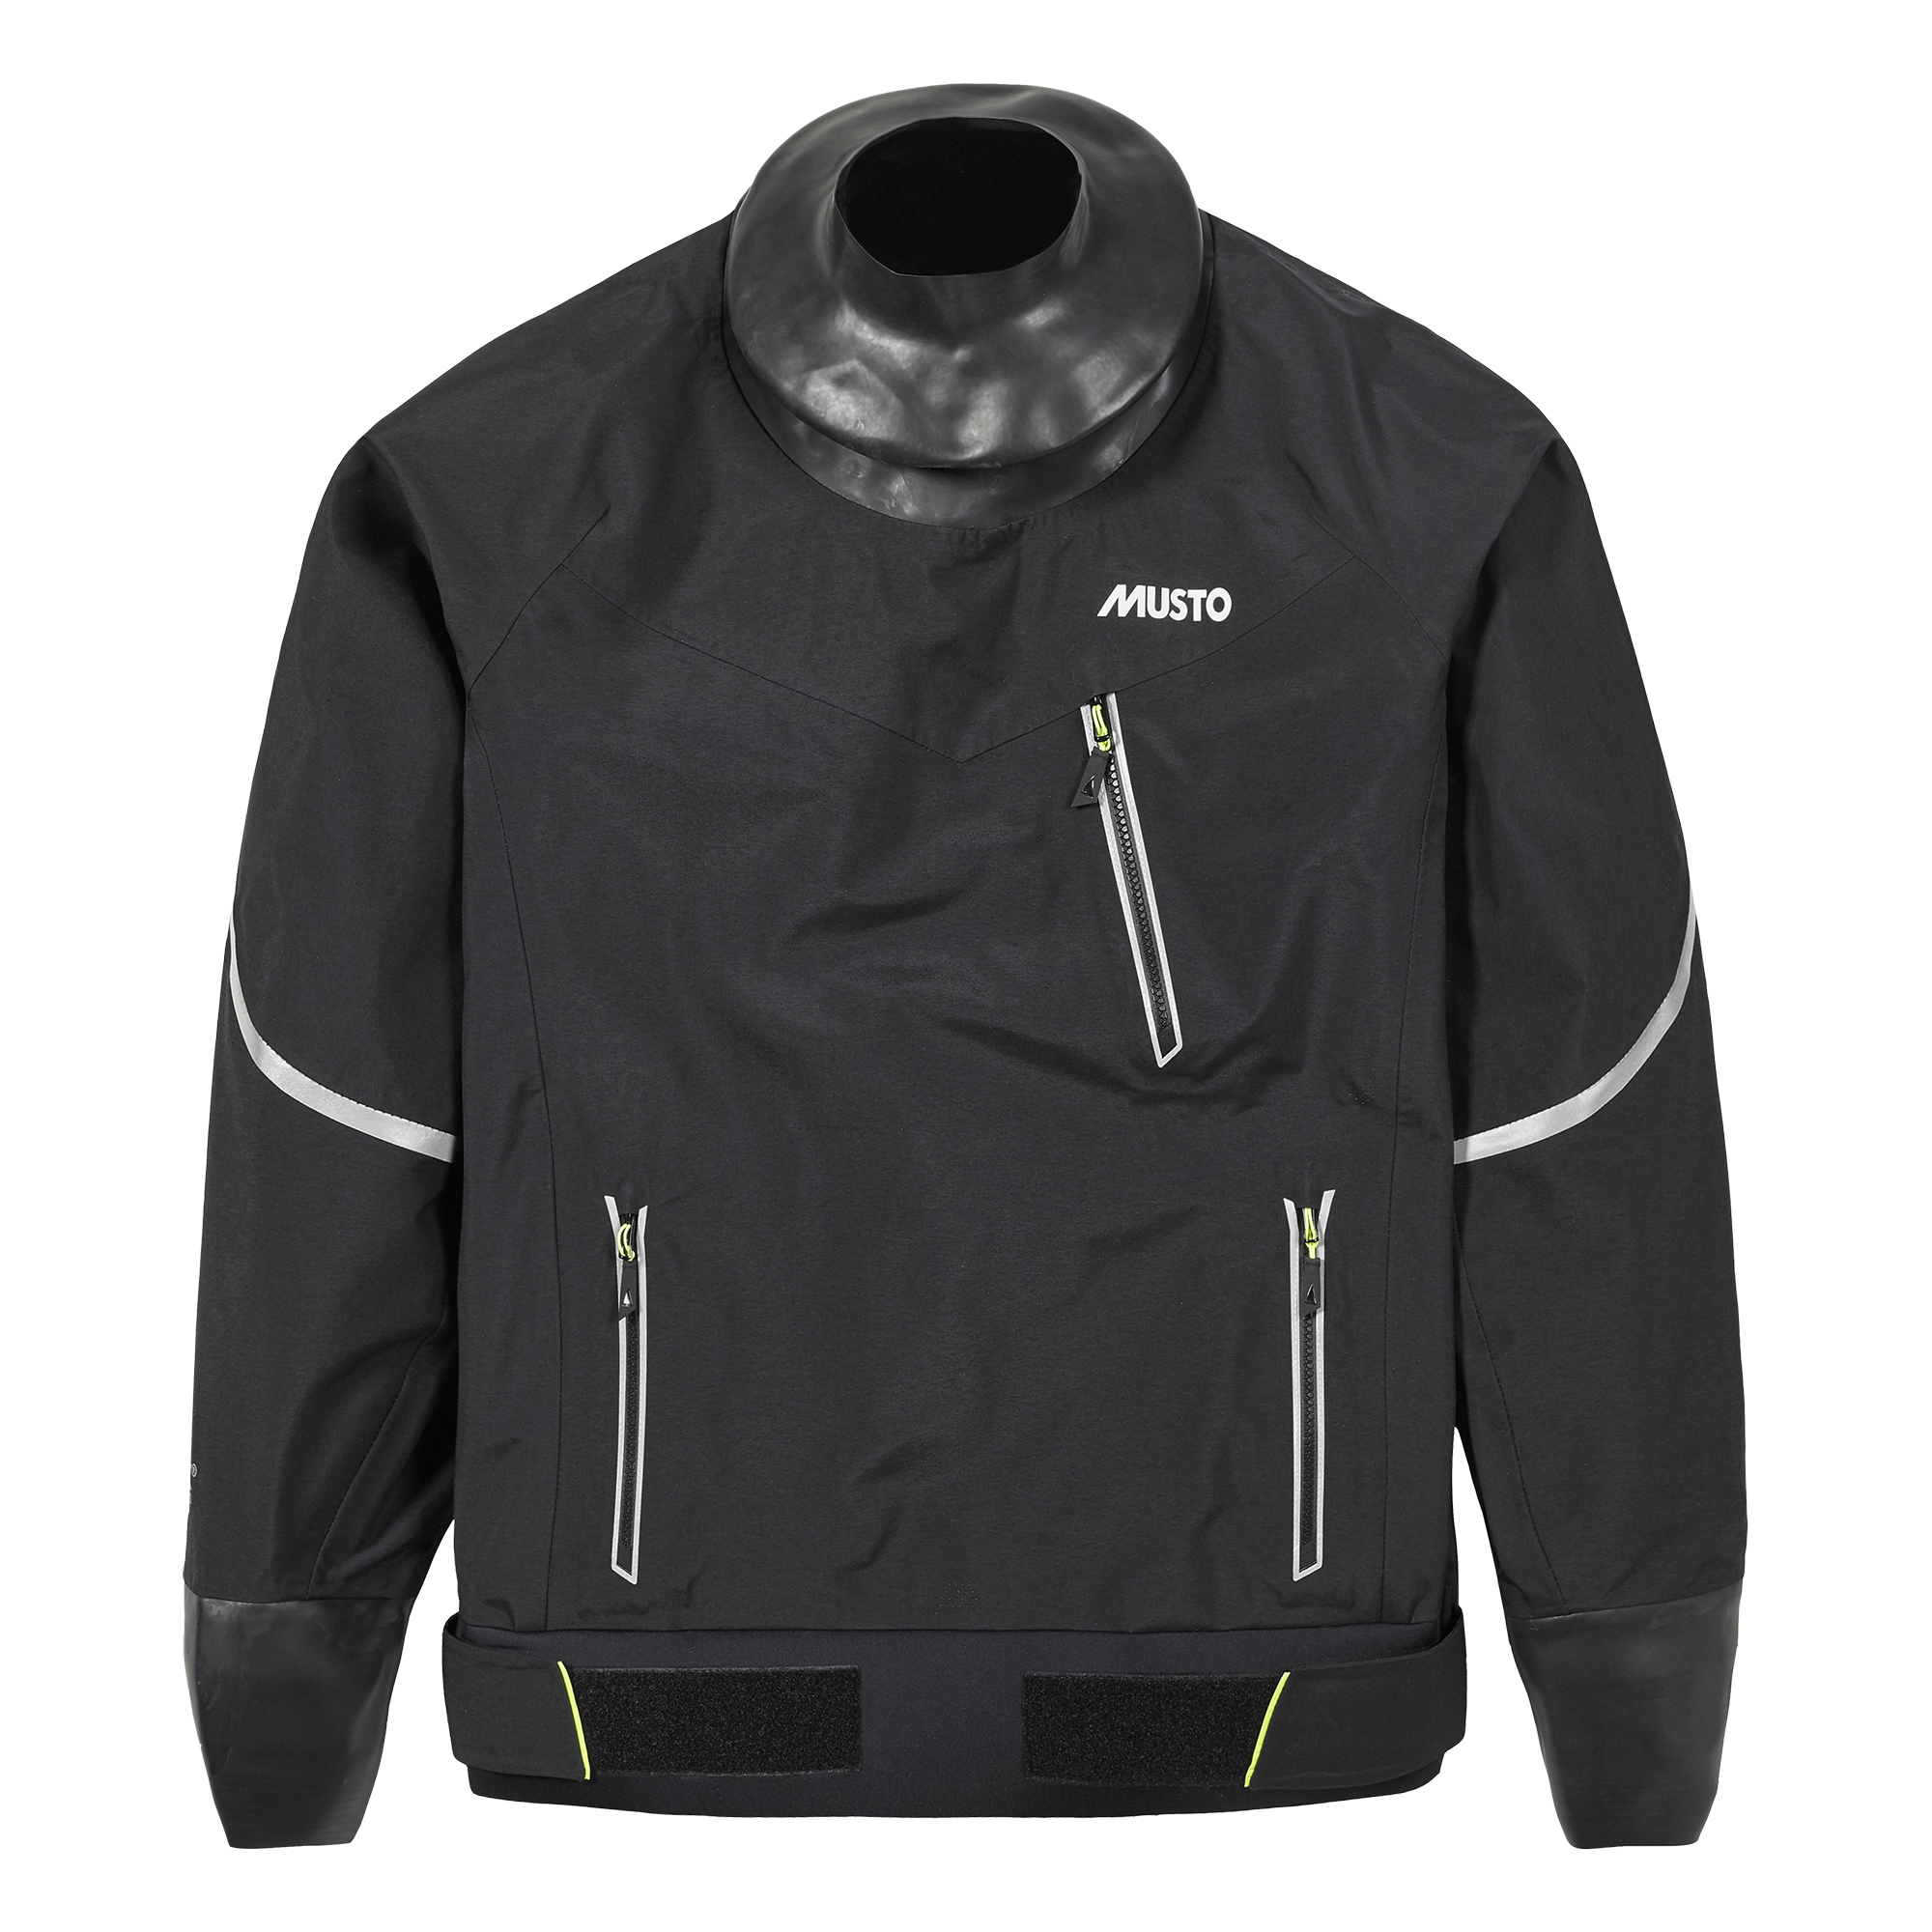 MUSTO MPX GORE-TEX PRO RACE DRY SMOCK (80828)